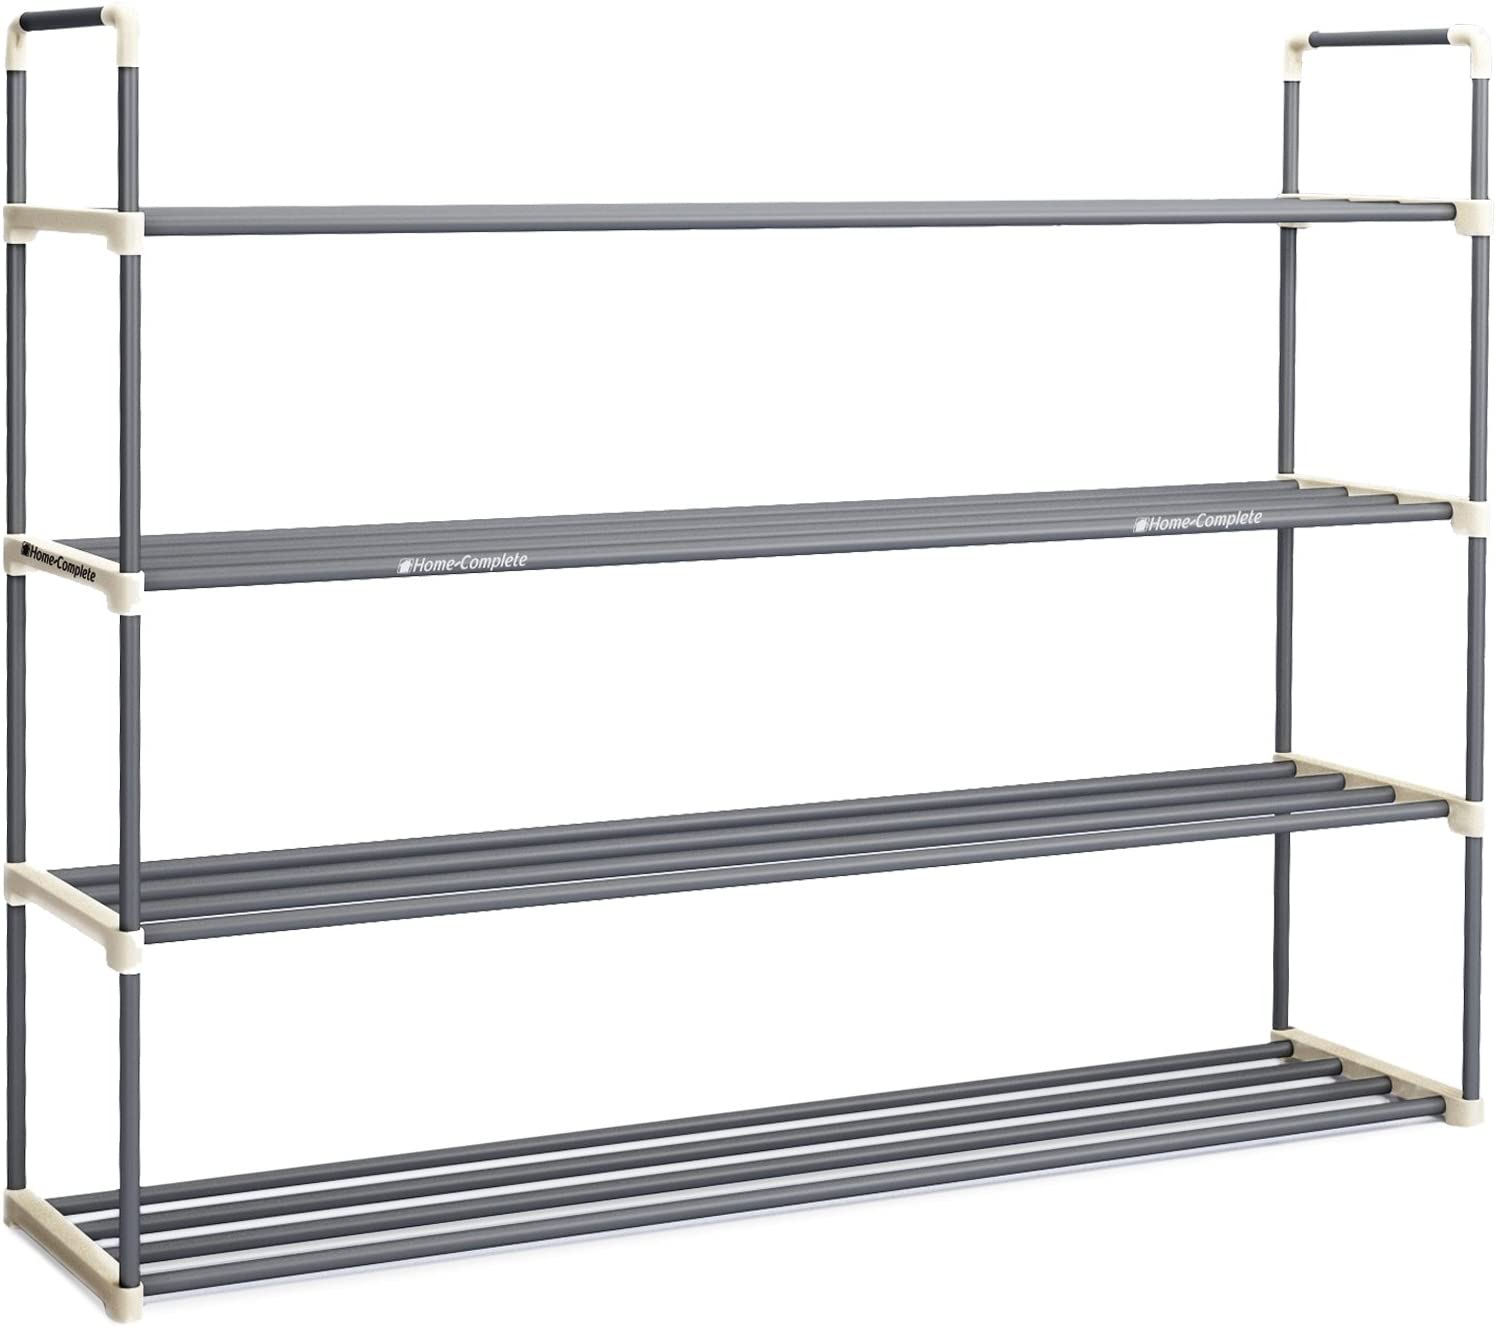 and Closet- Space Saving Storage and Organization by Home-Complete Hallway Shoe Rack with 4 Shelves-Four Tiers for 24 Pairs-For Bedroom Entryway